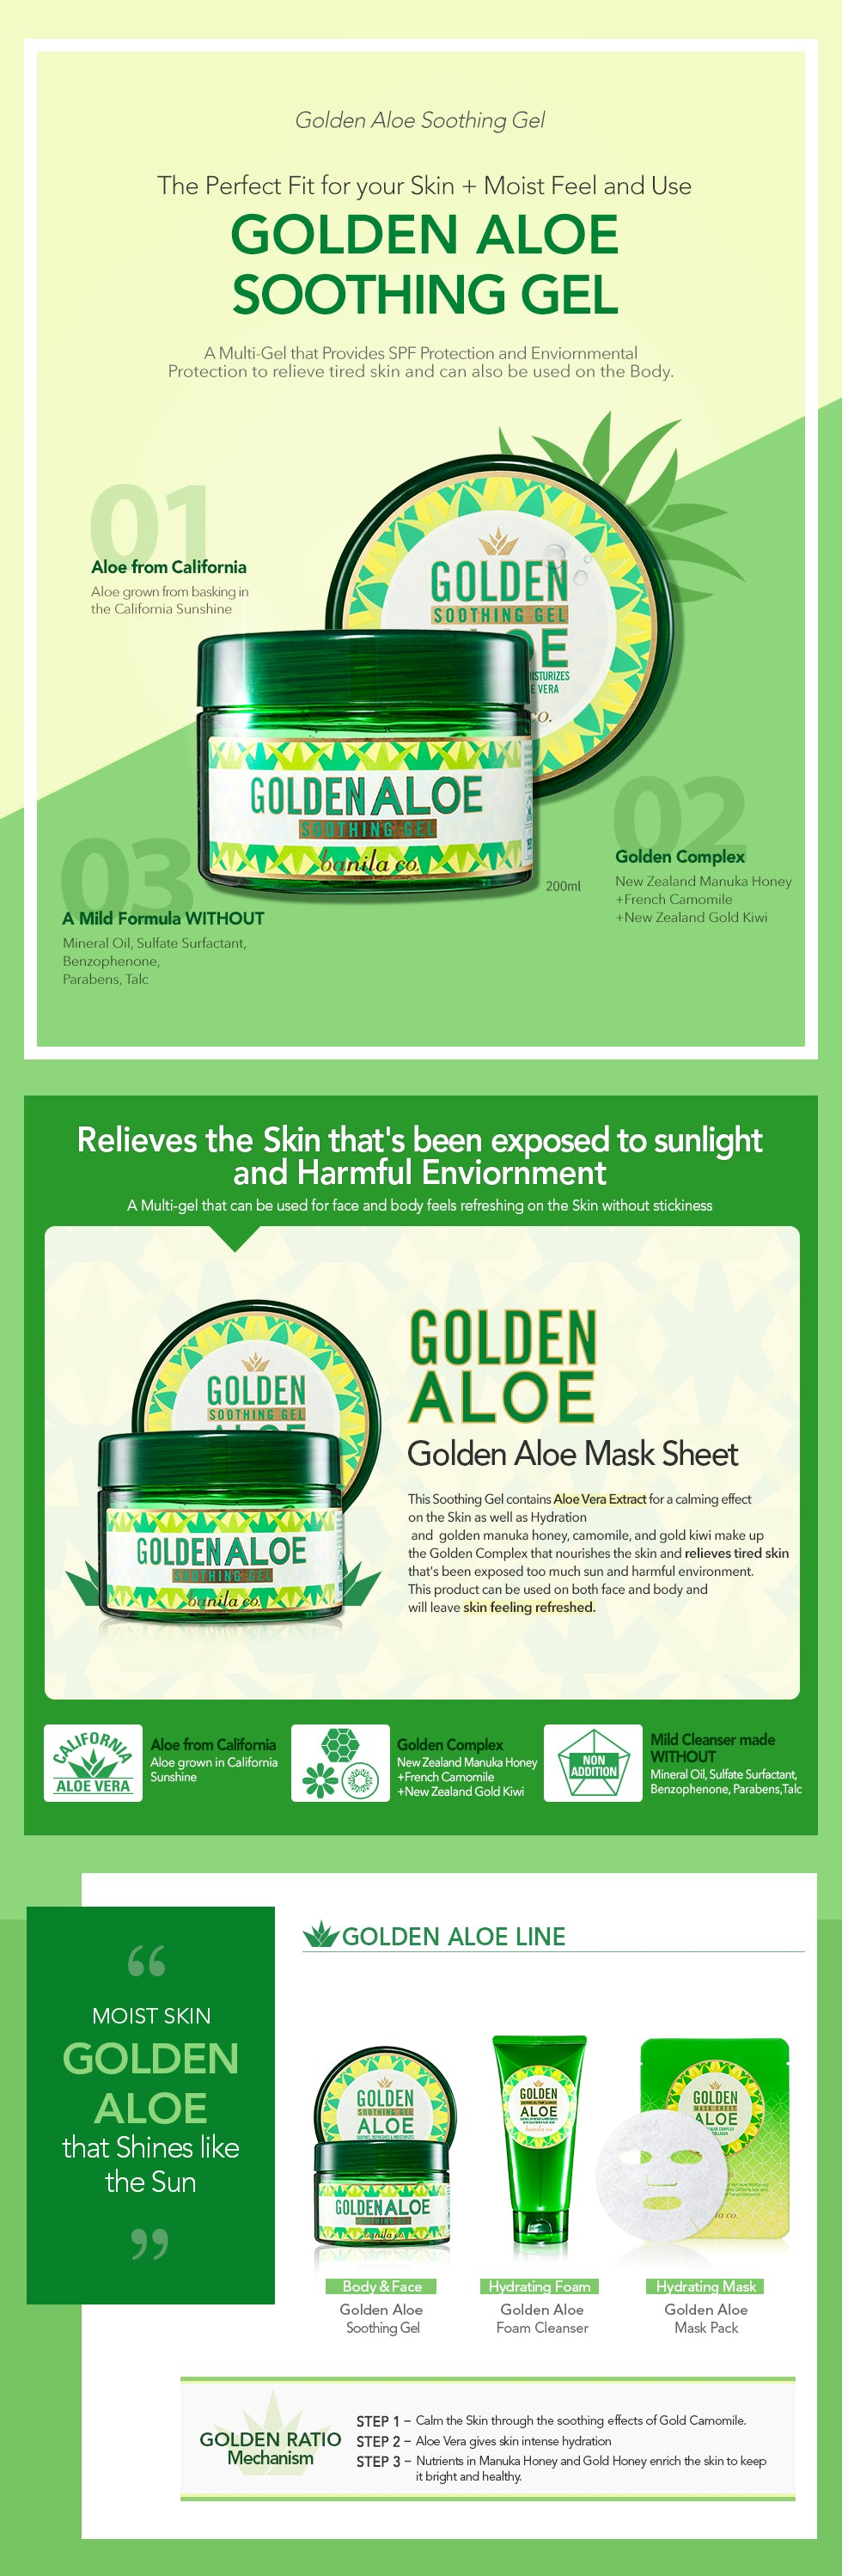 Banila Co - Golden Aloe Soothing Gel